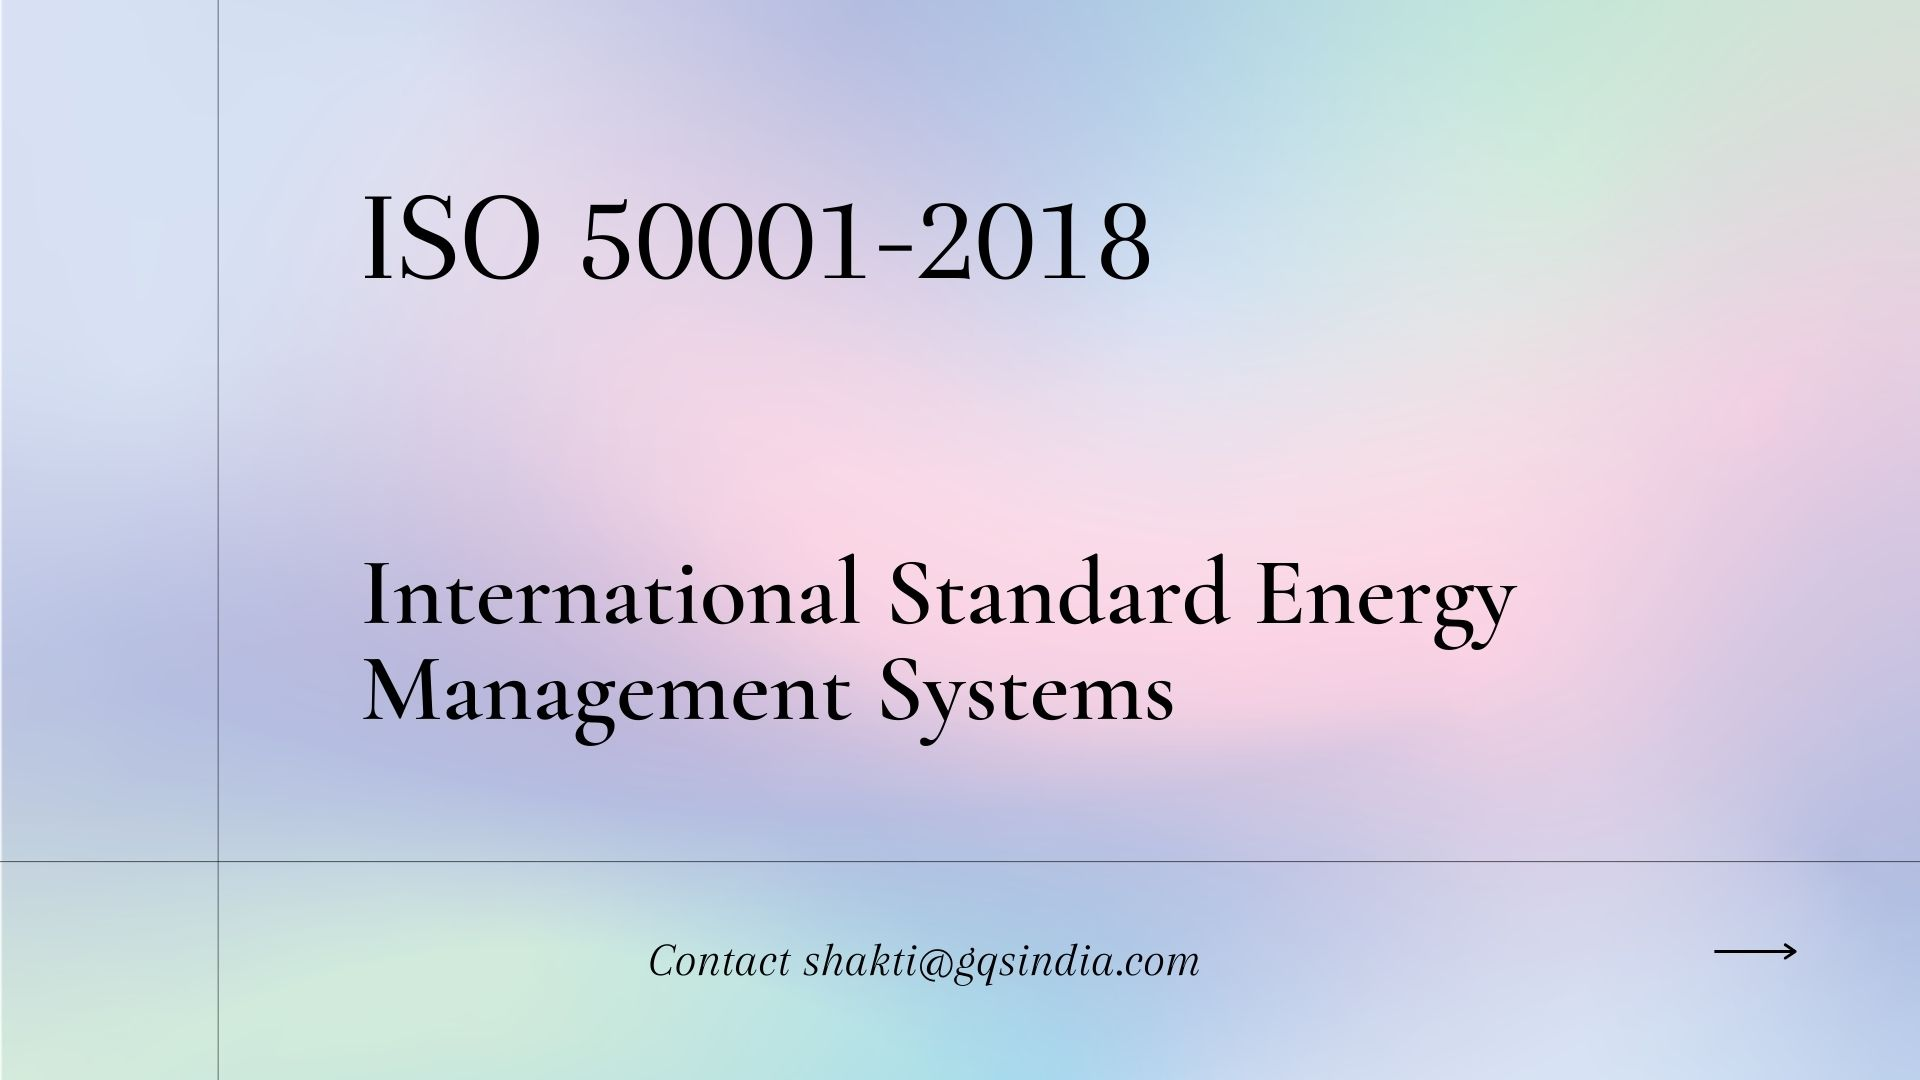 ISO 50001-2018 Certification